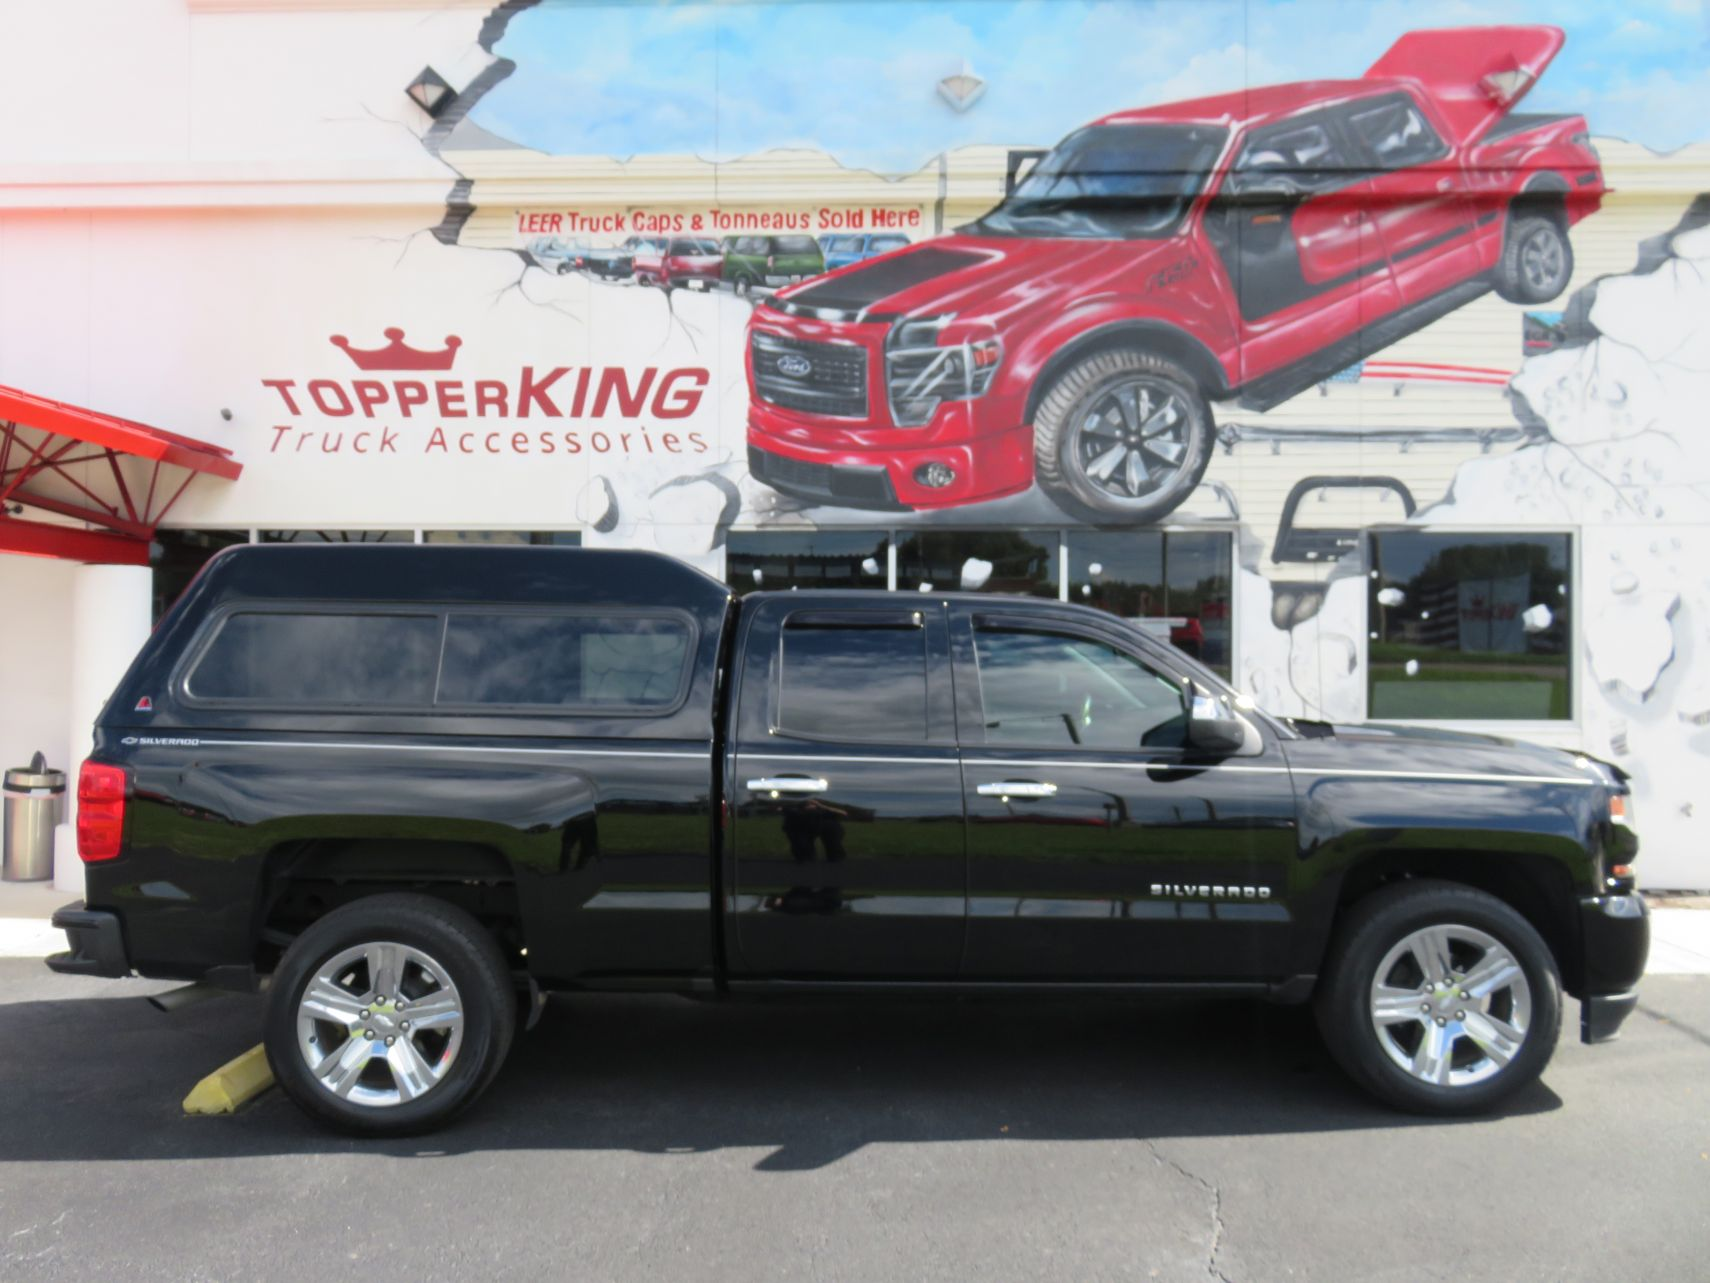 2018 Chevy Silverado with LEER 180, Vent Visors, Bedliner, and Hitch, by TopperKING in Brandon, FL 813-689-2449 or Clearwater, FL 727-530-9066. Call today!